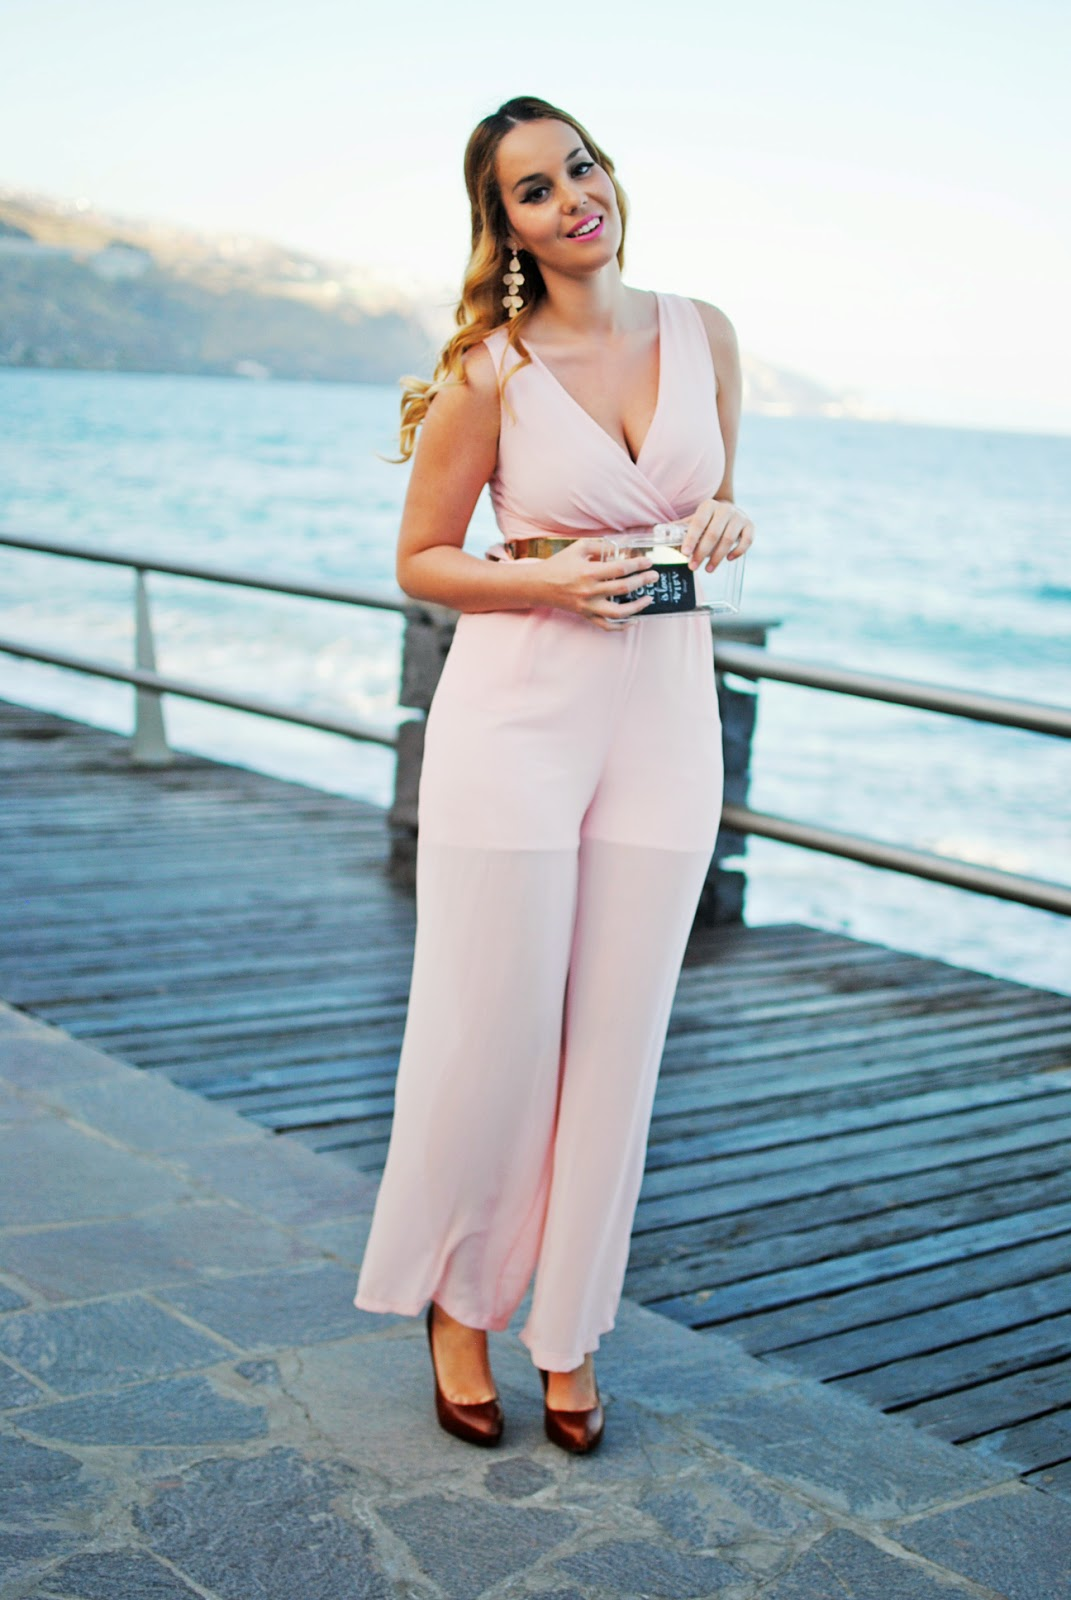 Nery hdez, baby pink, jumpsuit, walg, blonde , transparent cluch, teria yabar